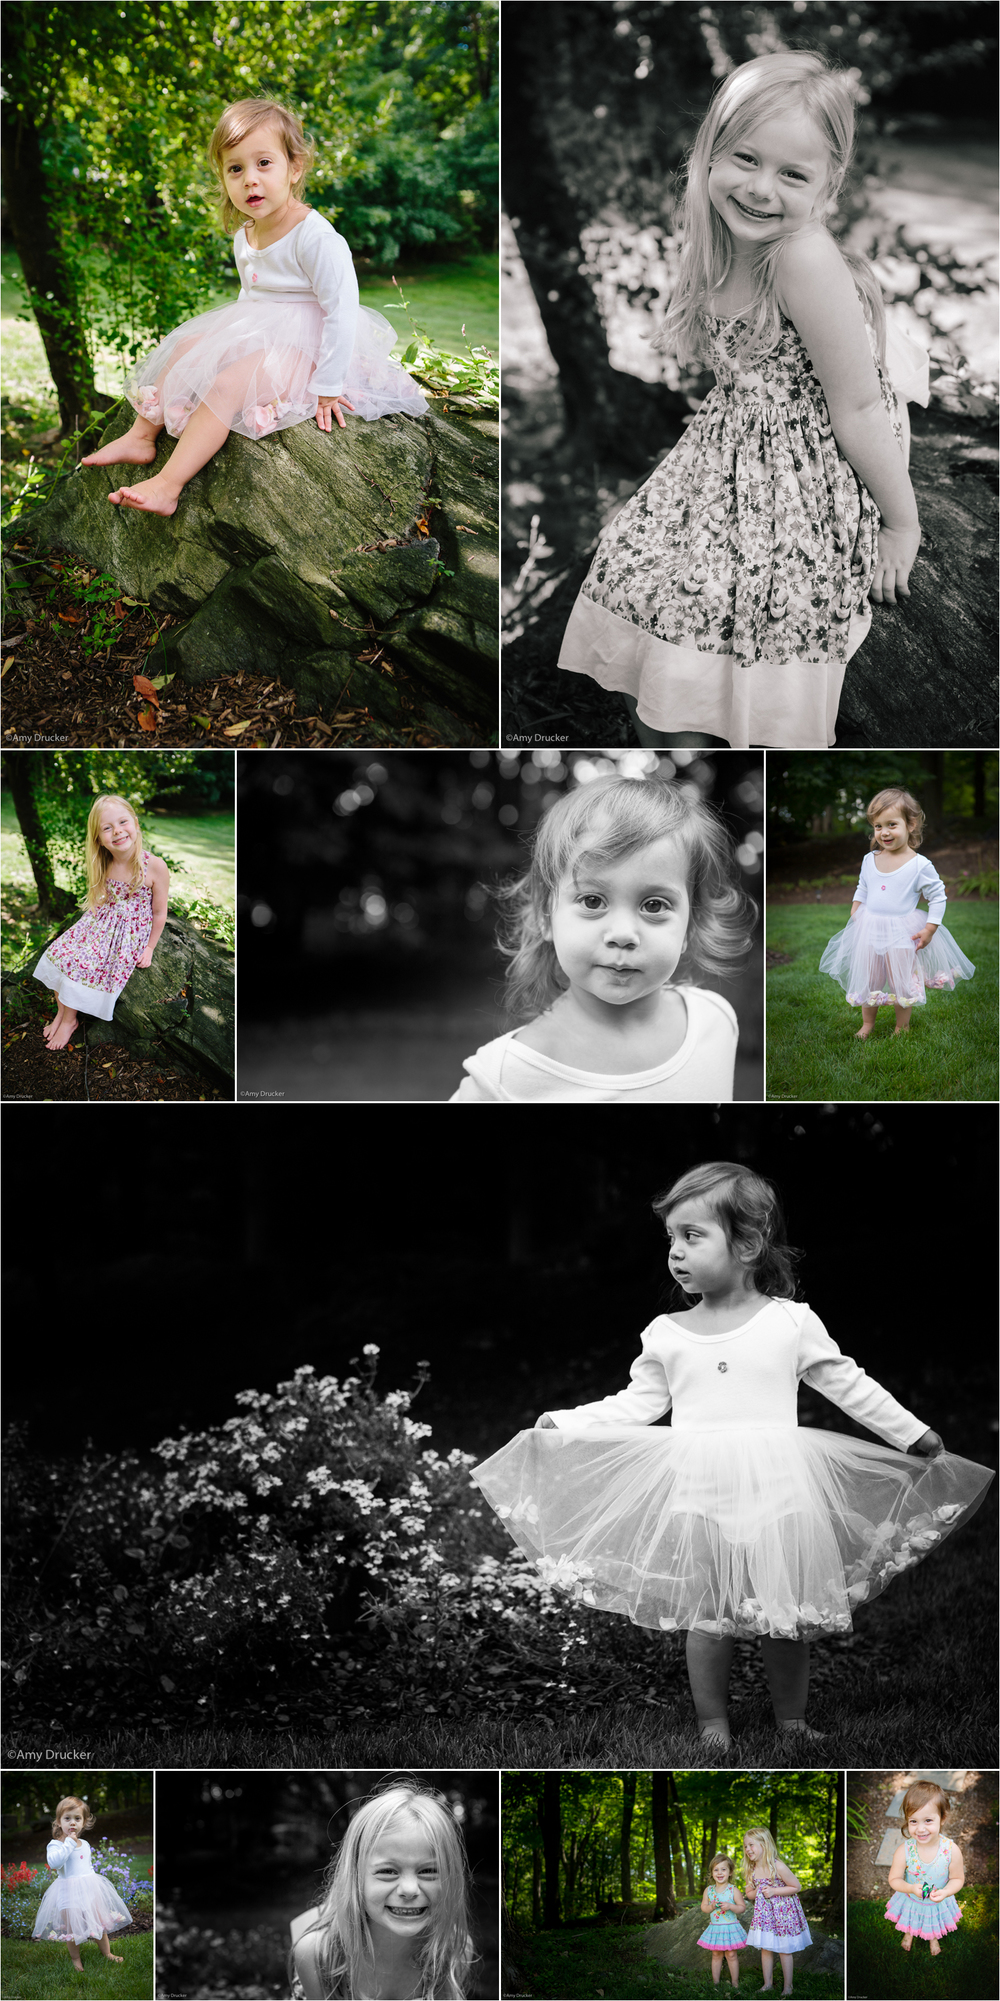 amy_drucker_photography_childrens_portraits_new_york2